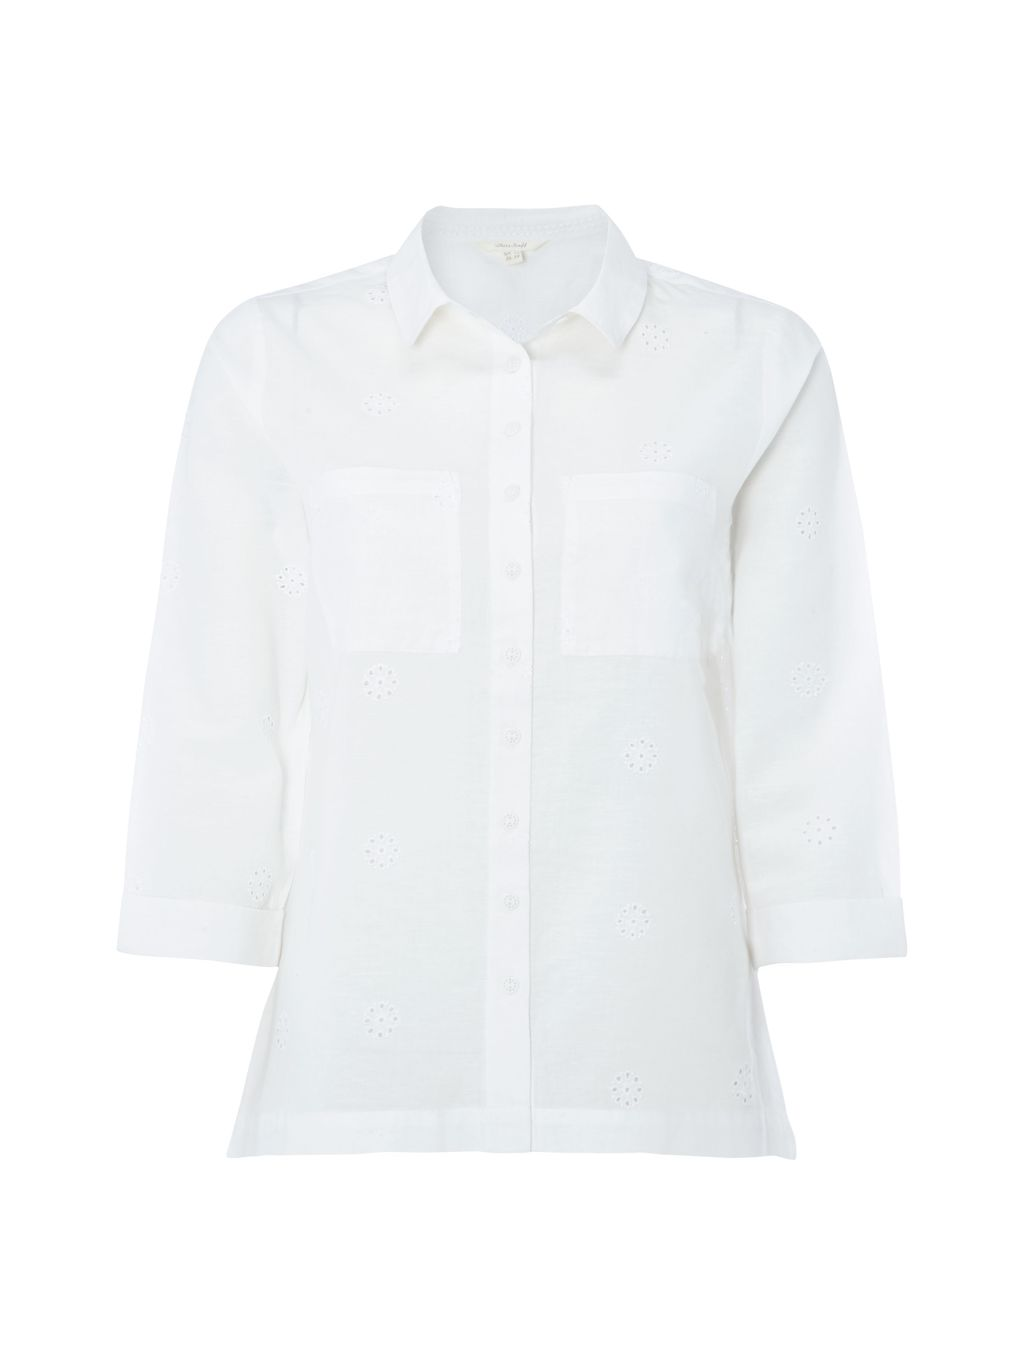 Etch Shirt, White - neckline: shirt collar/peter pan/zip with opening; pattern: plain; style: shirt; predominant colour: white; occasions: casual, work, creative work; length: standard; fibres: cotton - mix; fit: body skimming; sleeve length: 3/4 length; sleeve style: standard; texture group: cotton feel fabrics; pattern type: fabric; season: s/s 2016; wardrobe: basic